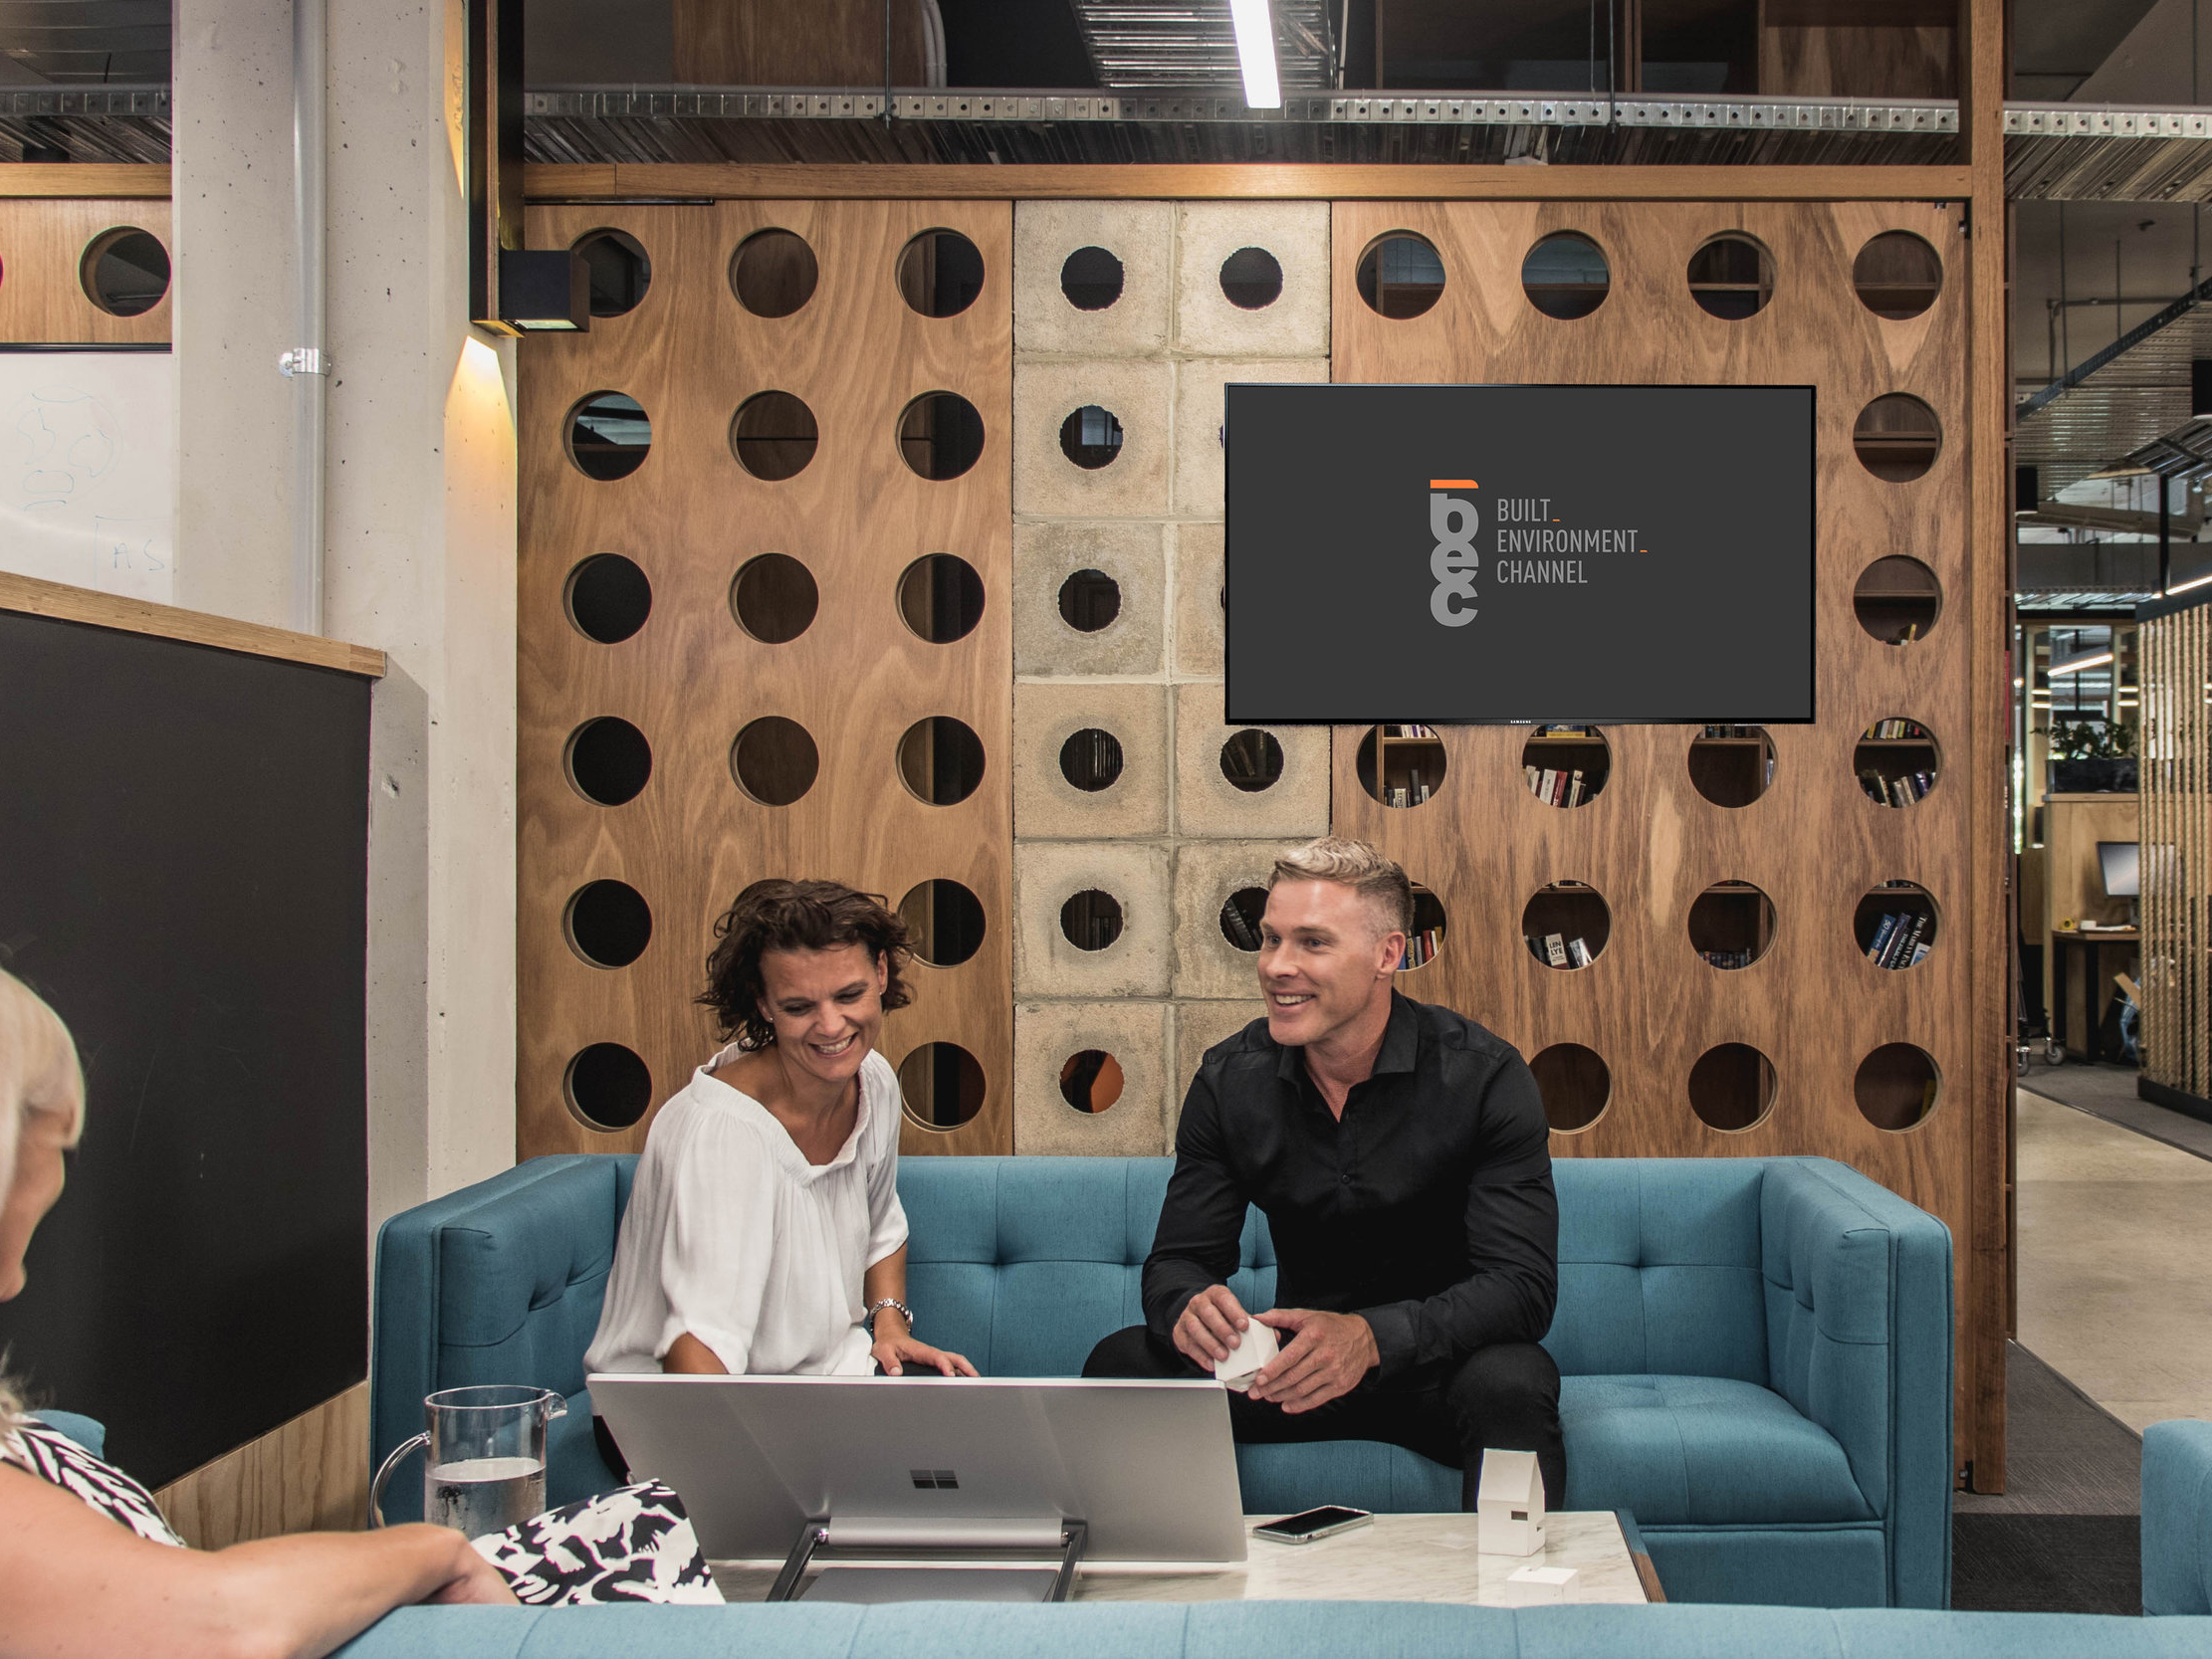 The Australian Institute of Architects (AIA) has partnered with the Built Environment Channel (BEC) to stream industry news, local and global projects, and the latest product information, to practices around the country. Image: BEC